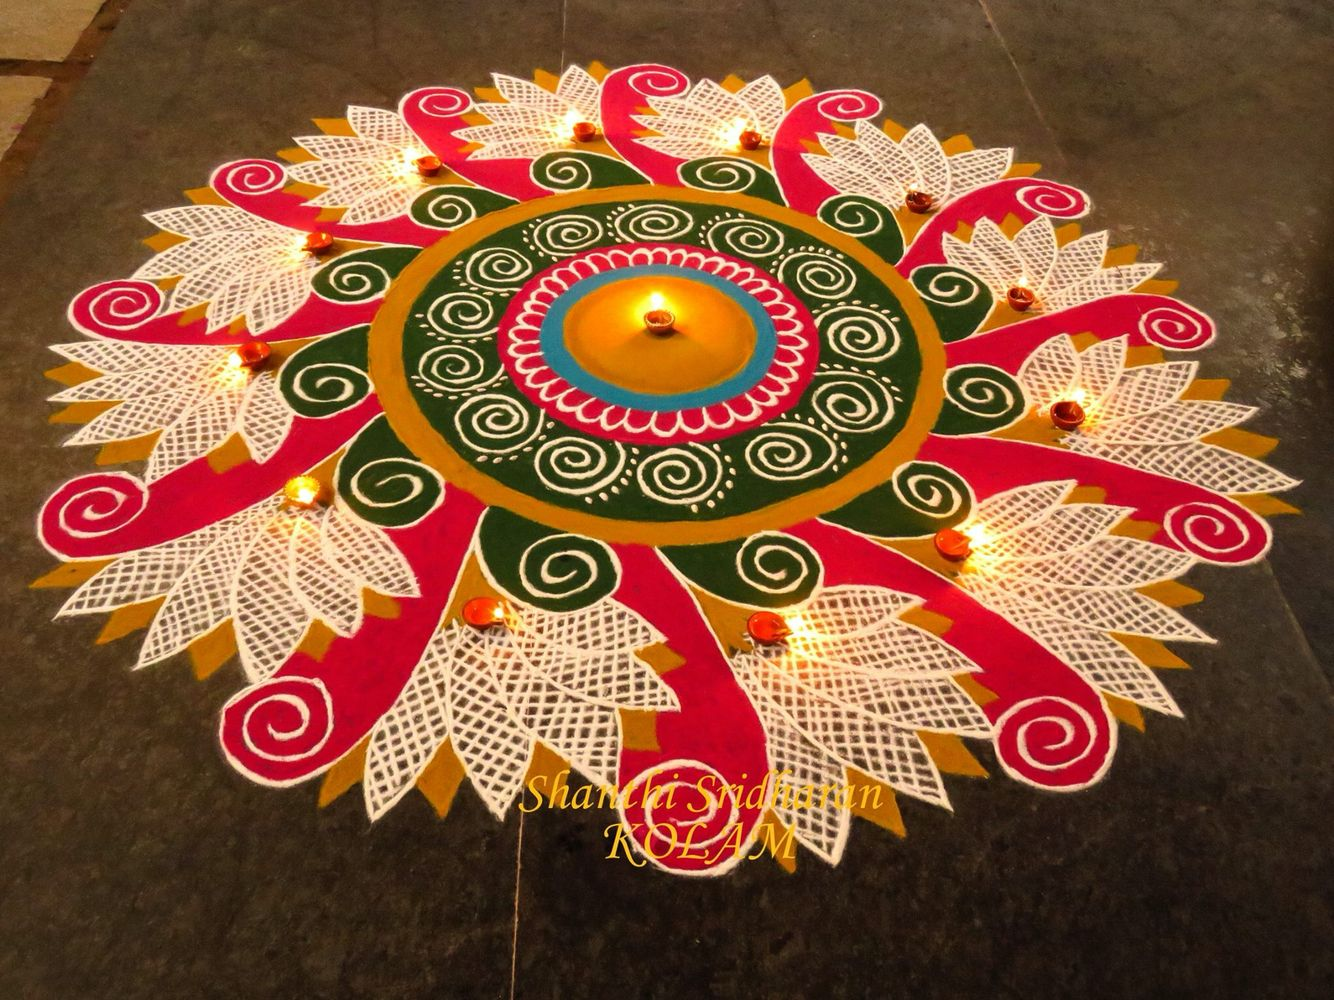 Latest Best Award Winning Rangoli Designs For Diwali With Diya Flower Themes Competitions Simple Easy Deepavali Patterns Beautiful HD Images